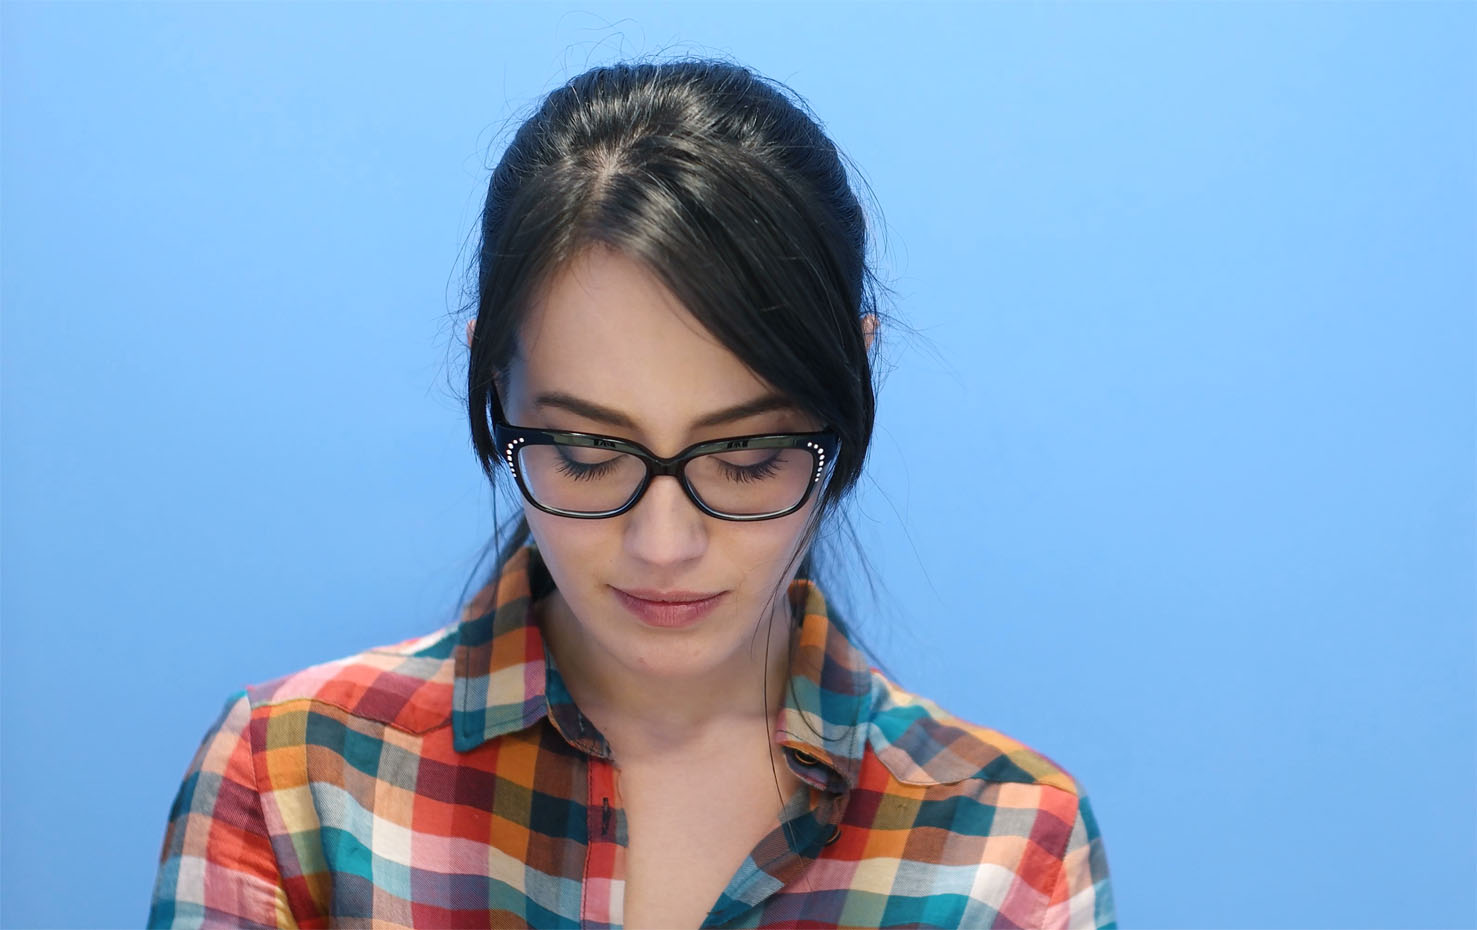 young-woman-wearing-glasses.jpg